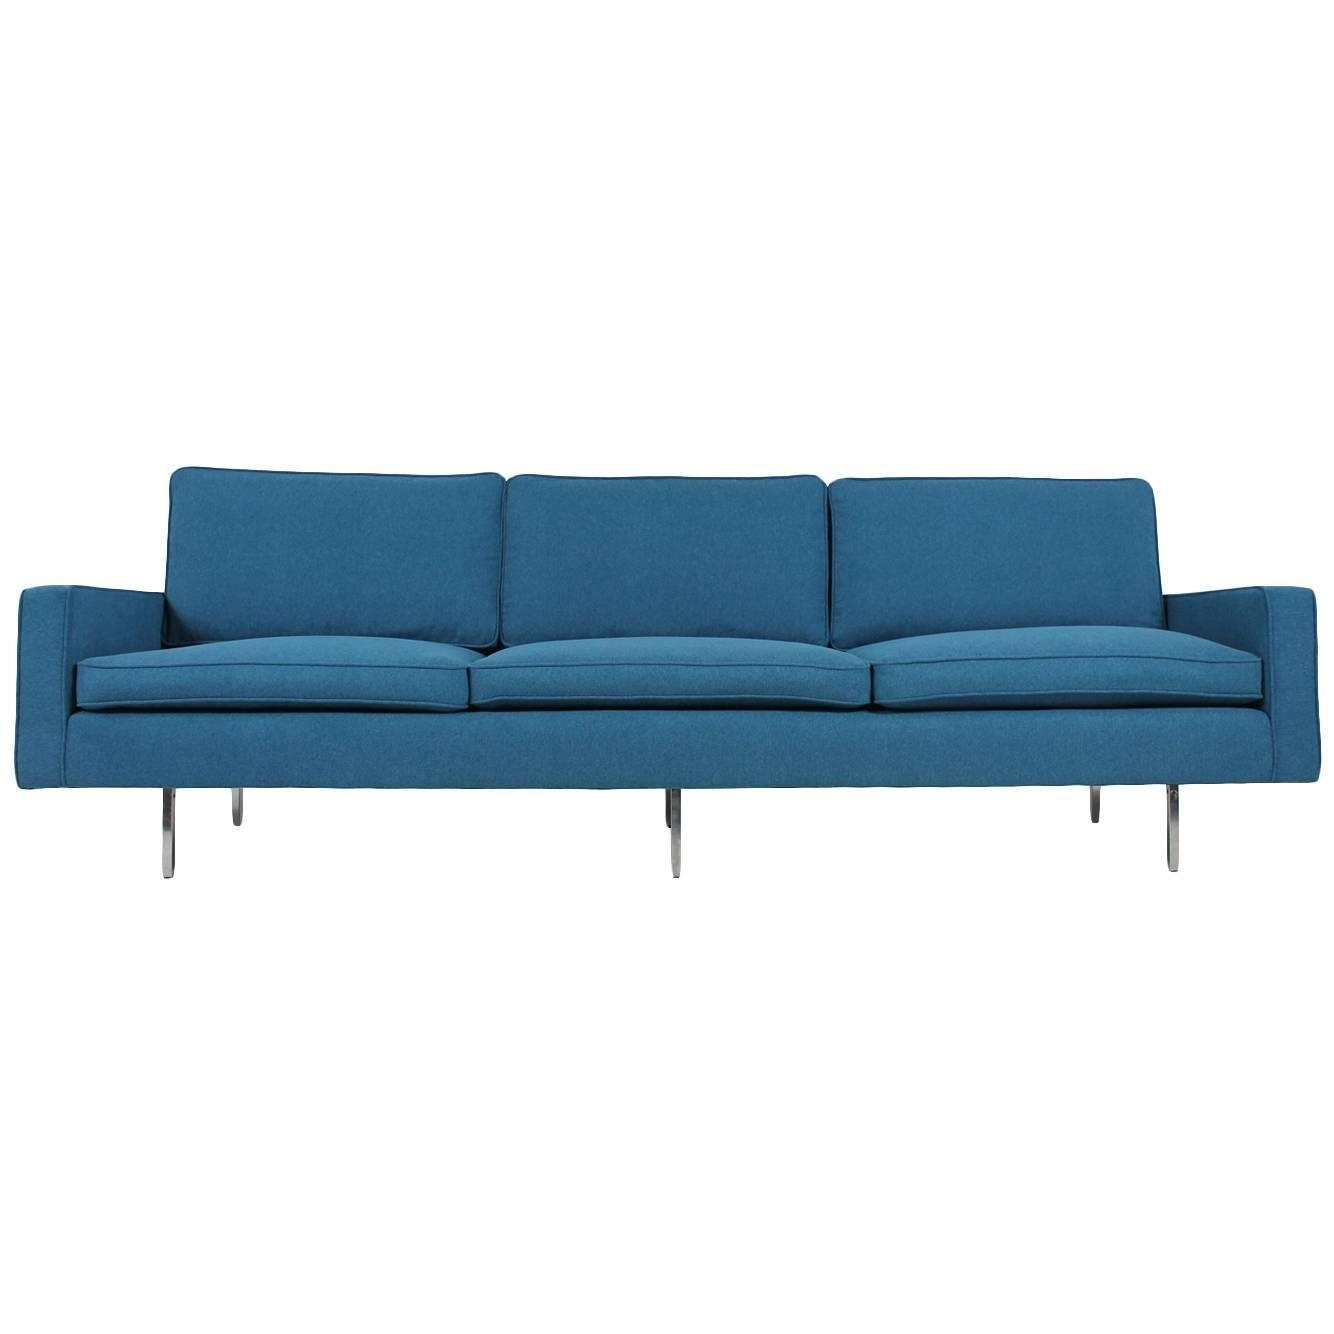 Beautiful Mid Century Florence Knoll Sofa Mod (View 16 of 20)